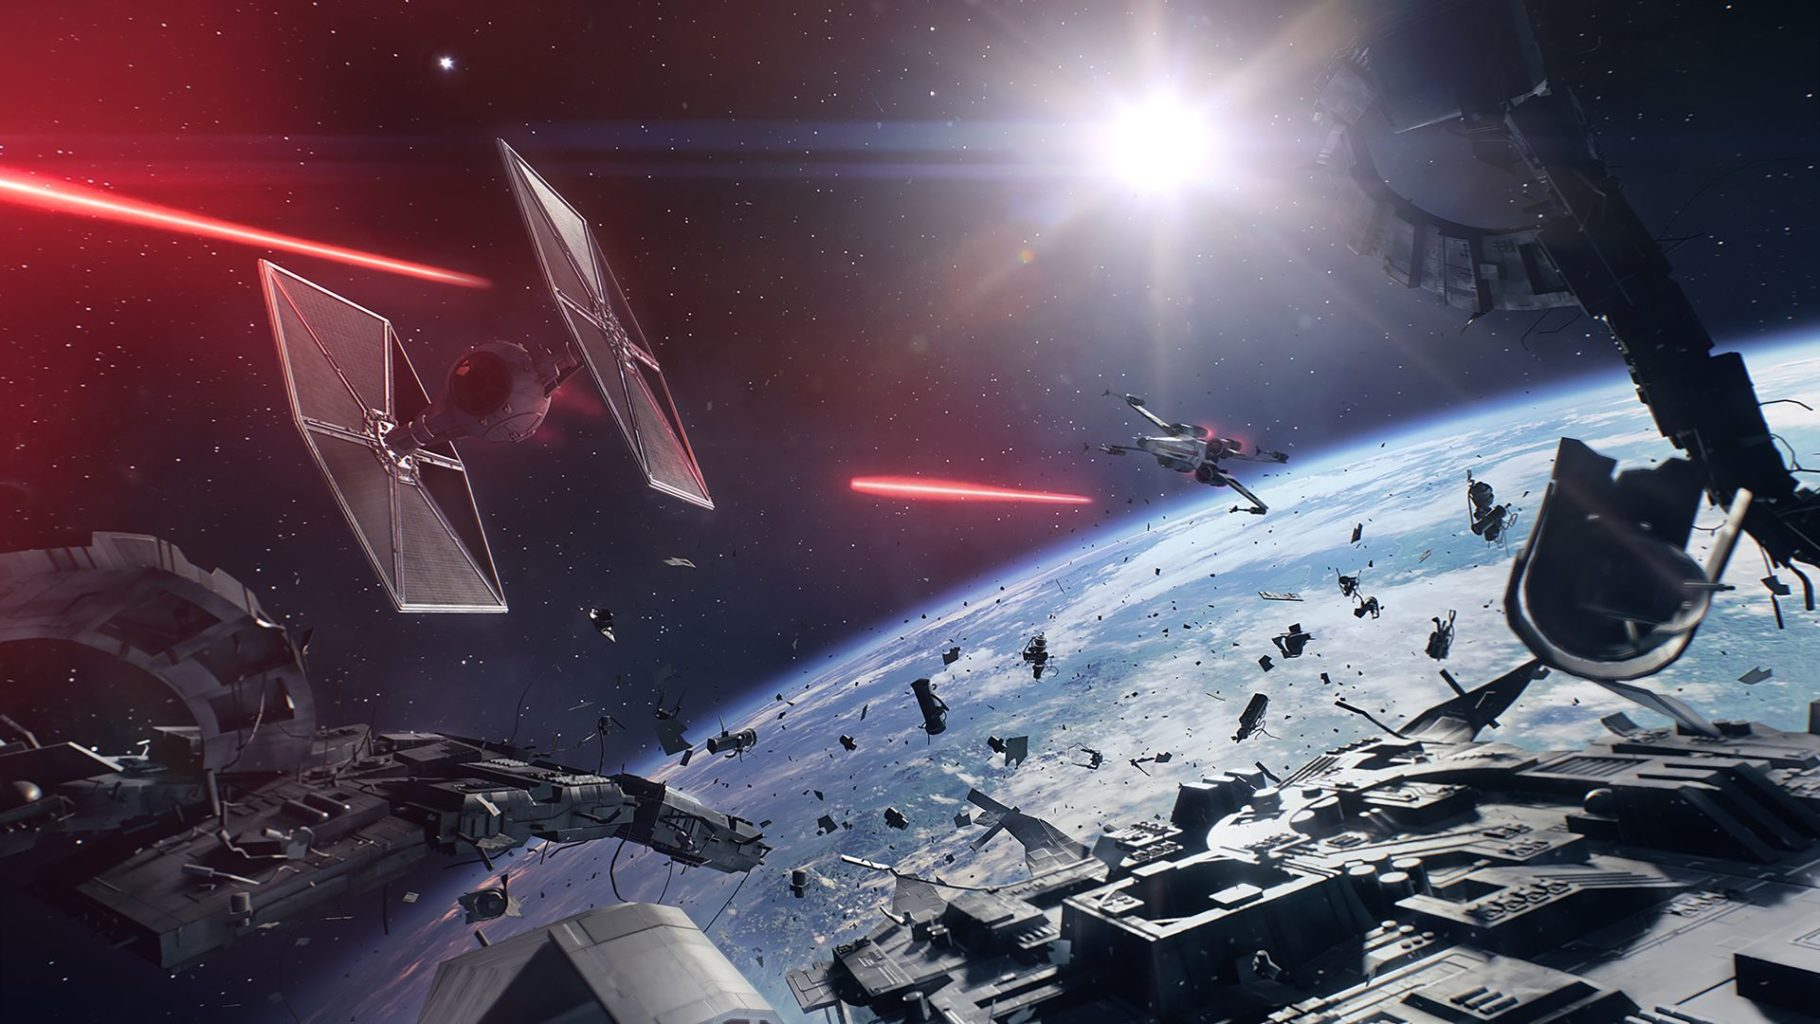 https://www.dailydot.com/parsec/star-wars-battlefront-2-gameplay/